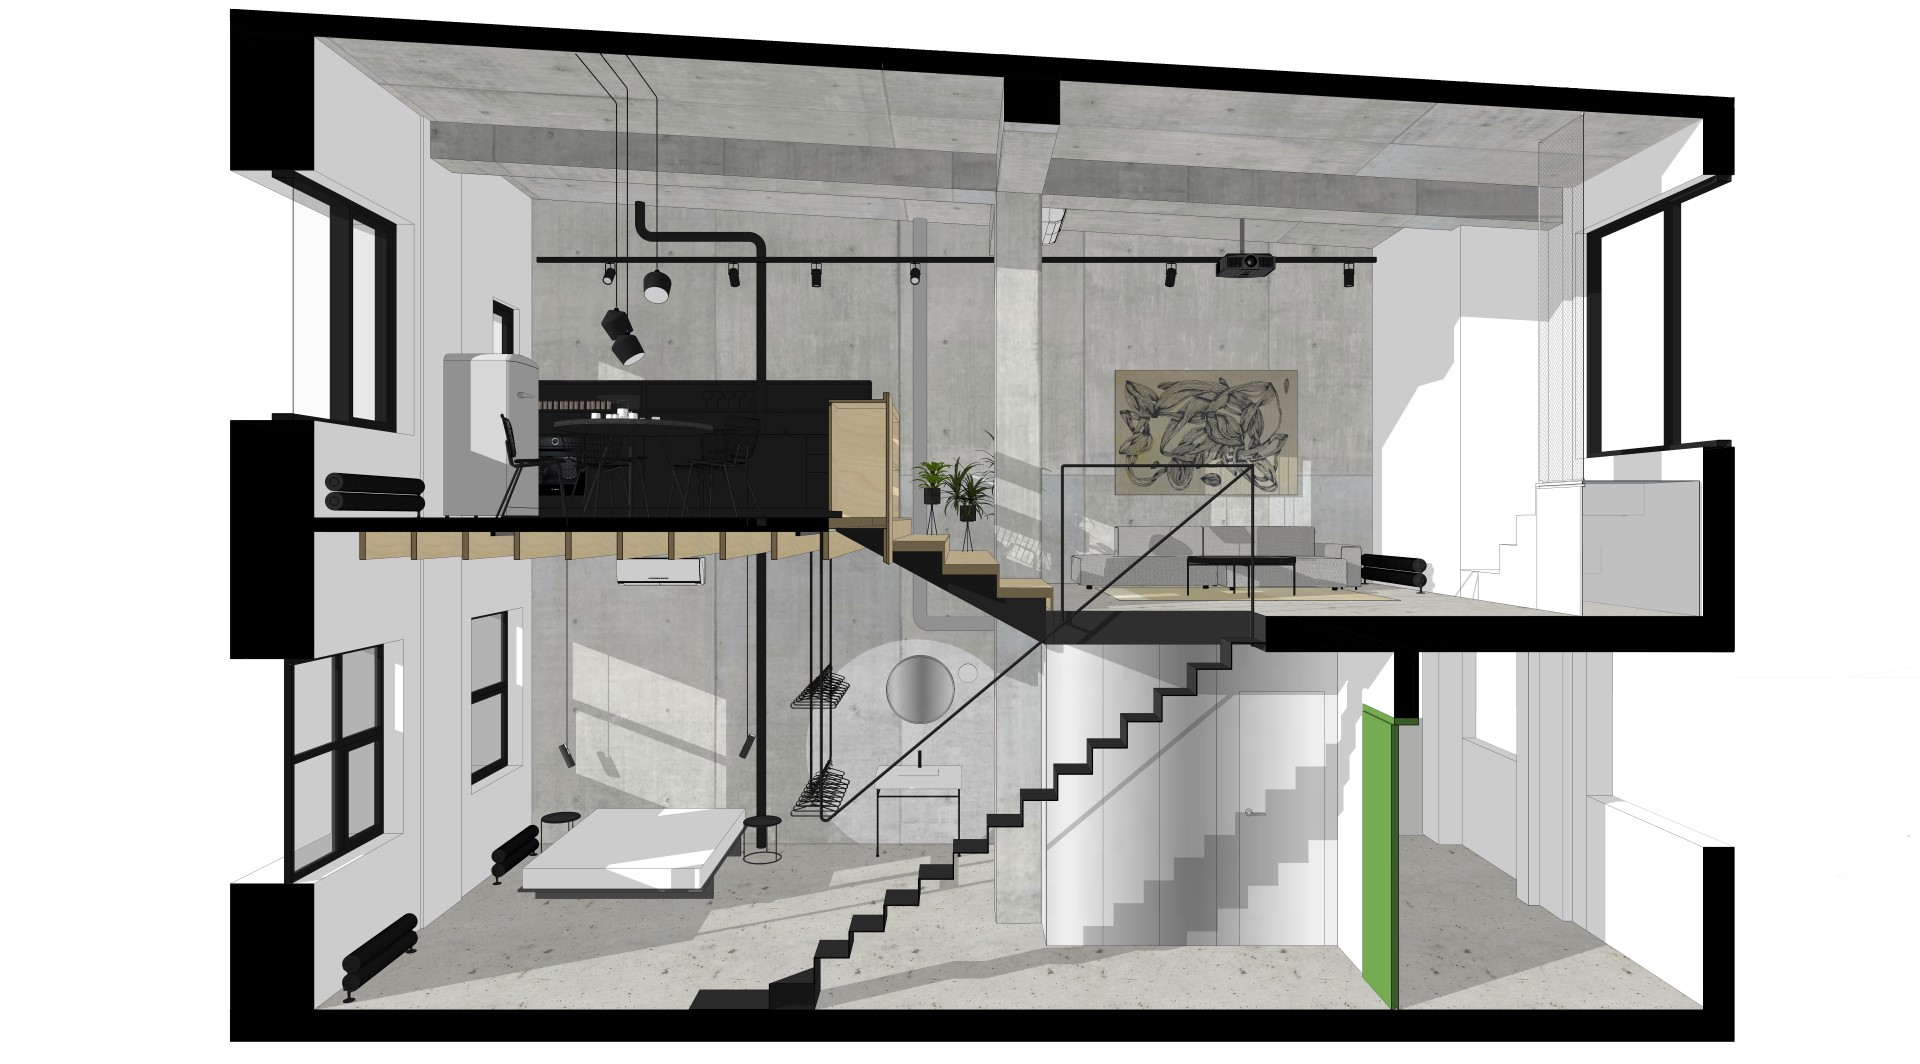 jurajhubinsky_section_loft.jpg